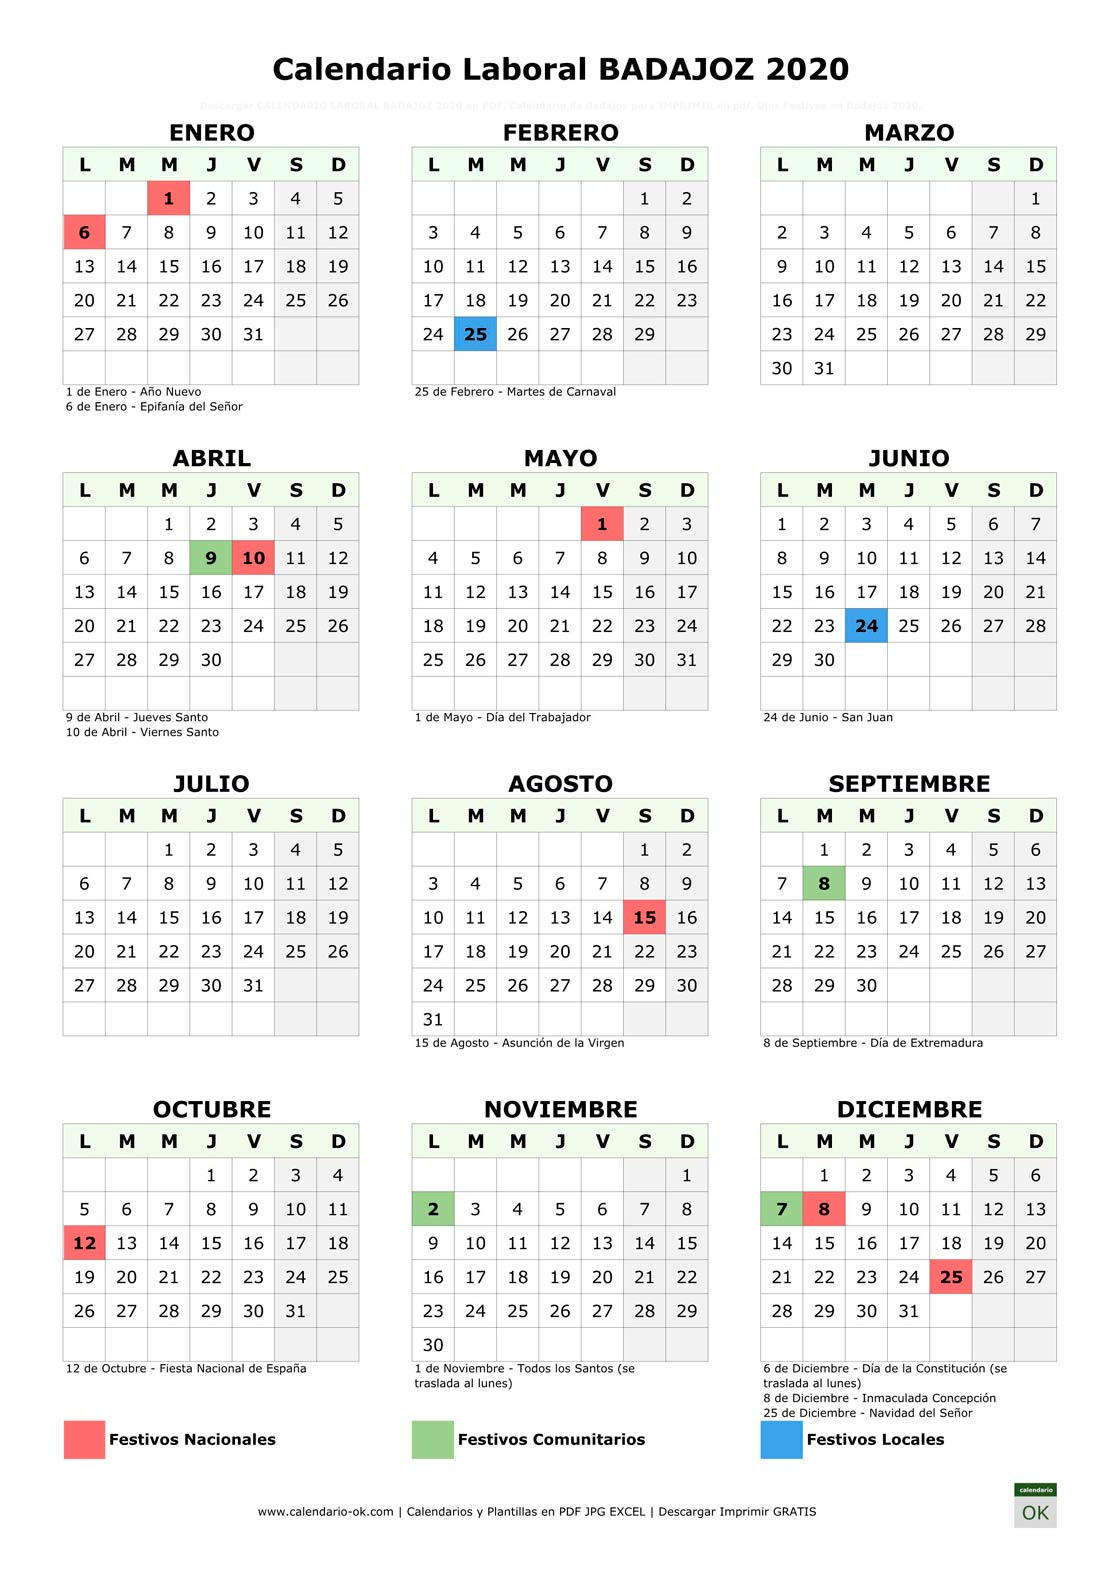 Calendario Laboral BADAJOZ 2020